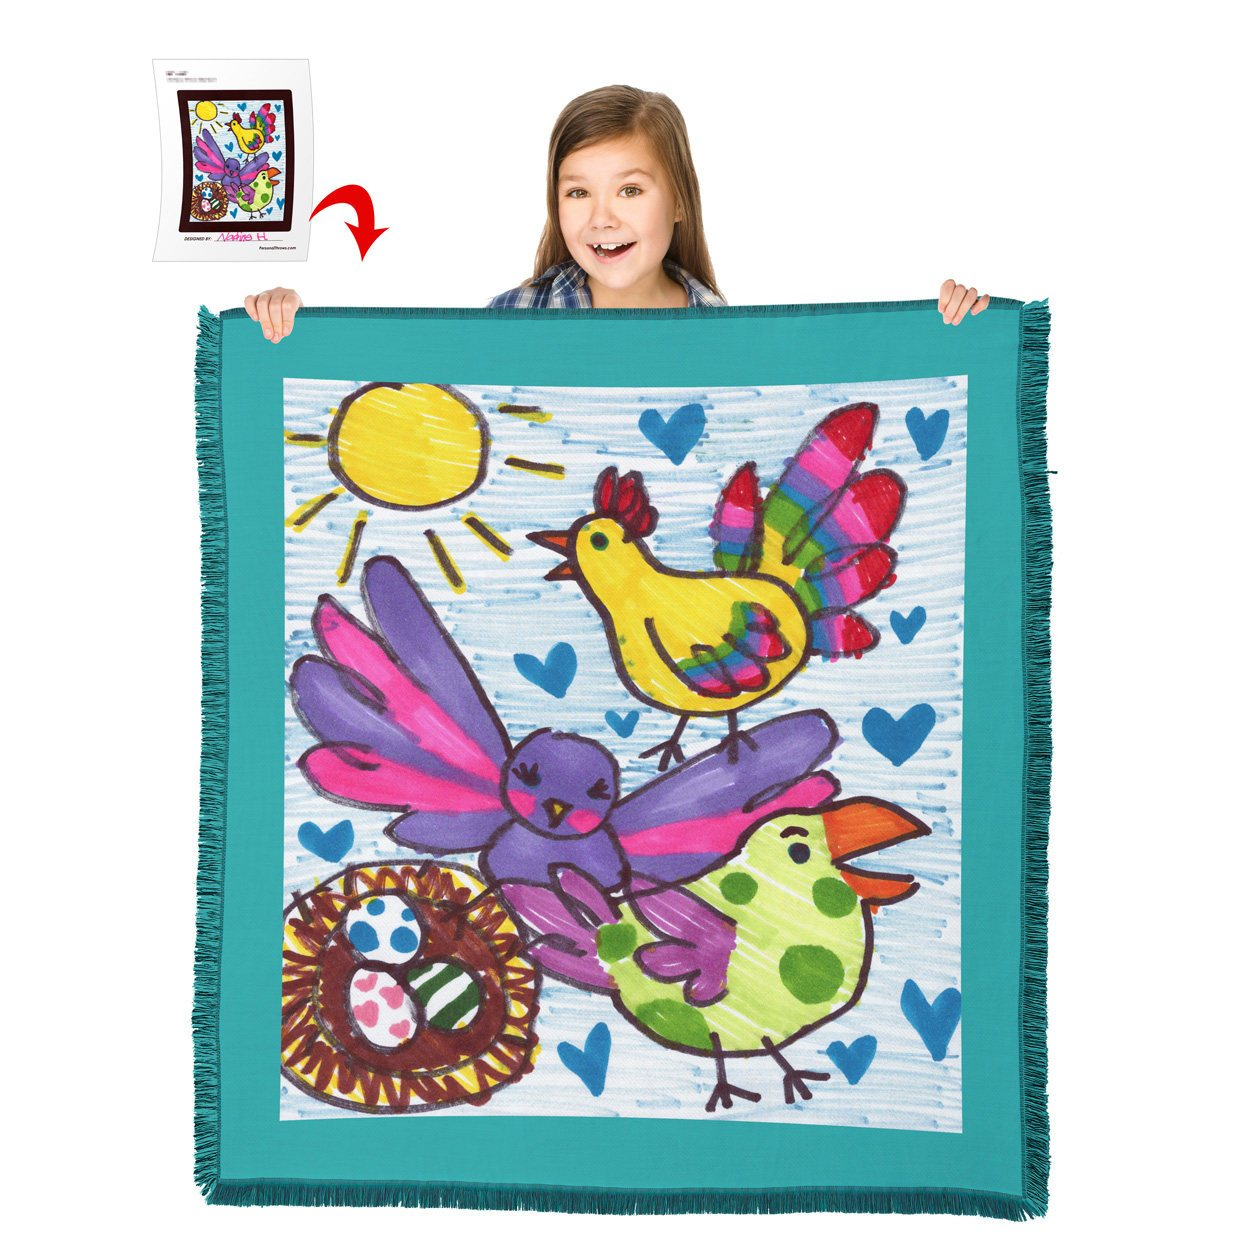 "Turn Your Child's Drawing into a 60"" x 54"" HD Woven Throw Blanket"